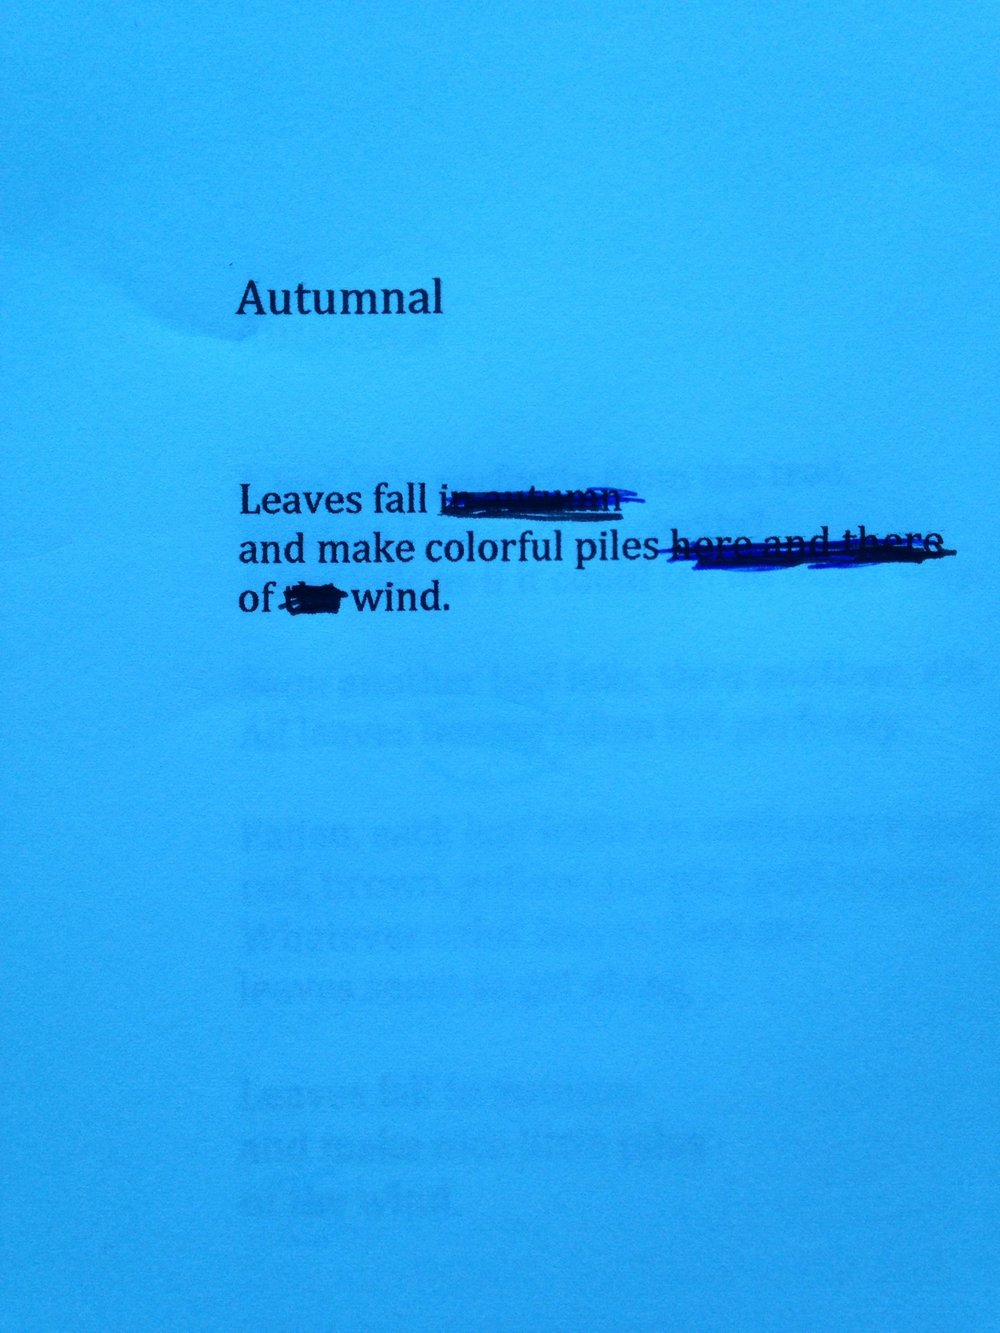 Draft of poem, December 21, 2016.